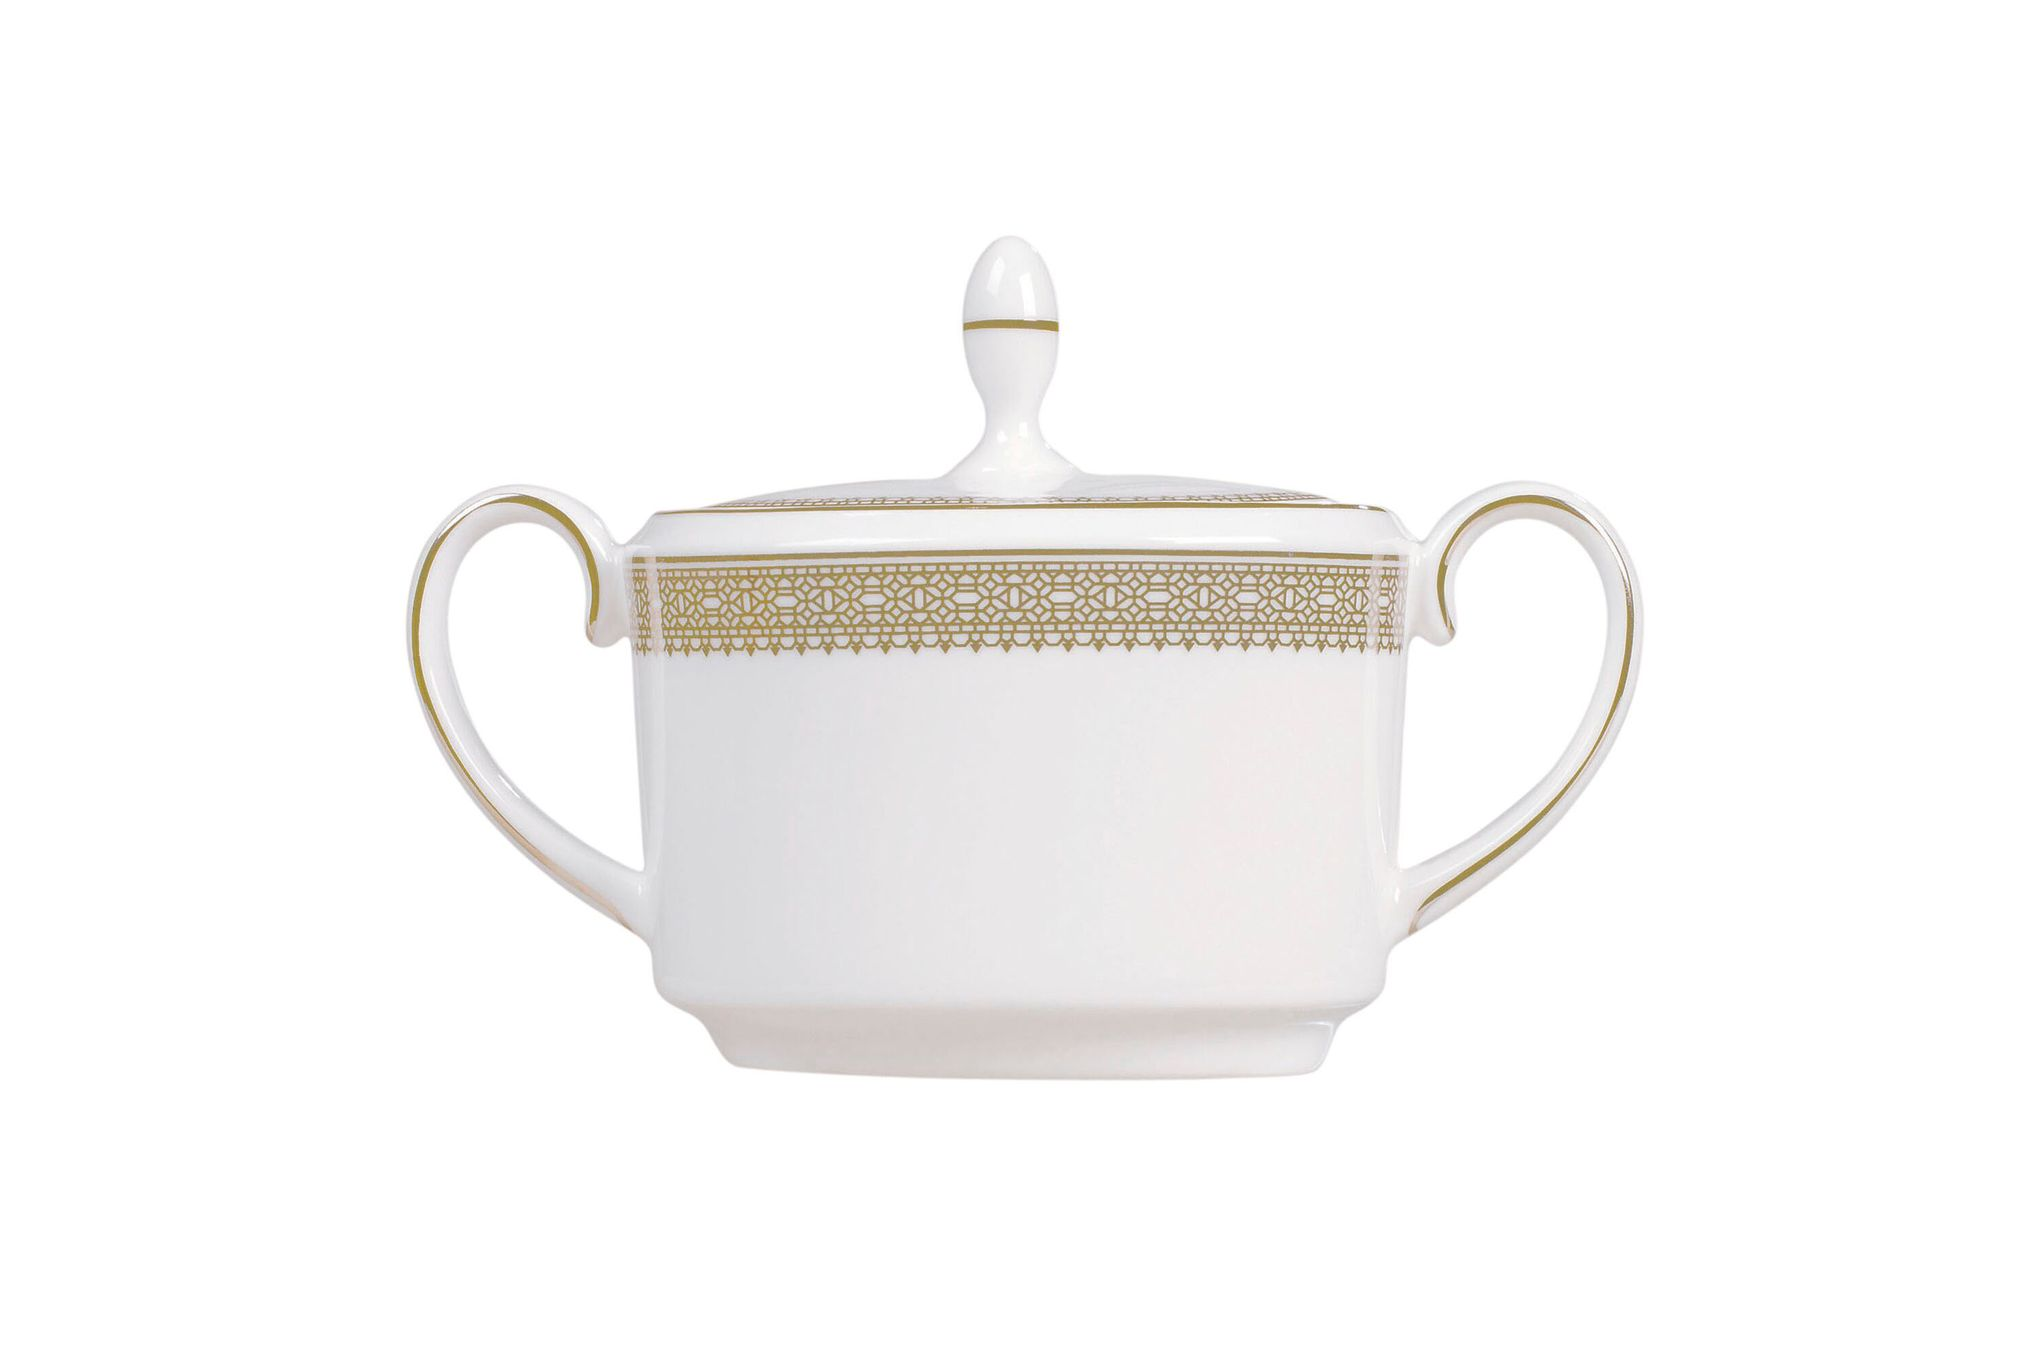 Vera Wang for Wedgwood Lace Gold Sugar Bowl - Lidded (Tea) thumb 1